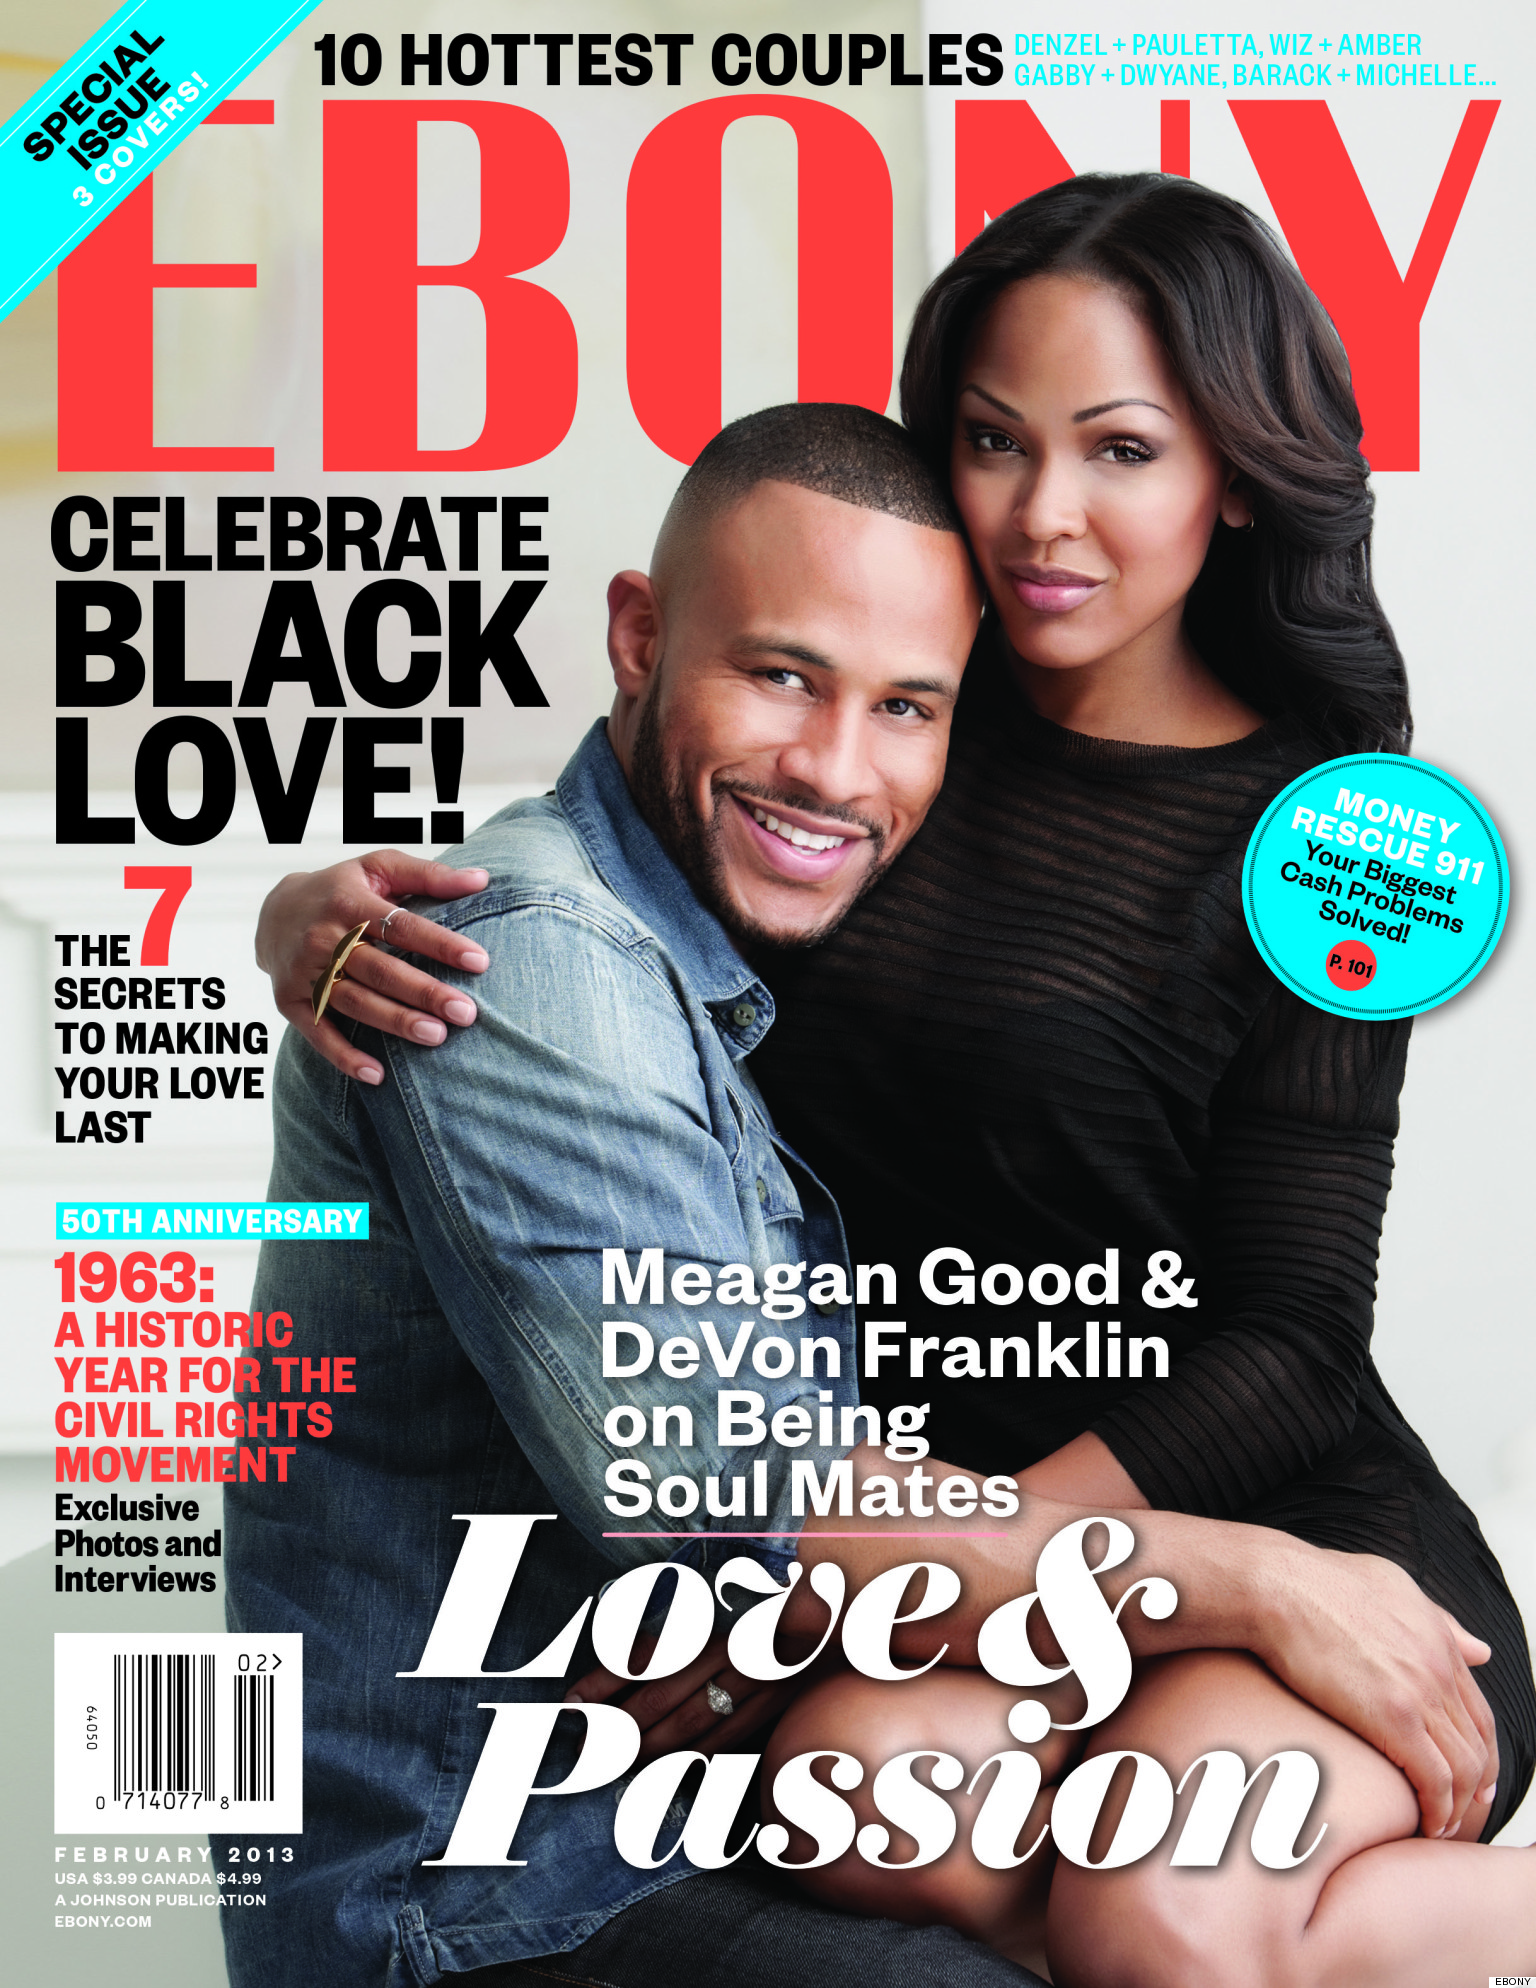 ebony movies.com Oct 2013  The countdown is on for The Best Man Holiday, the long-awaited sequel to the  beloved 1999 romantic comedy, and to gear up for the big .